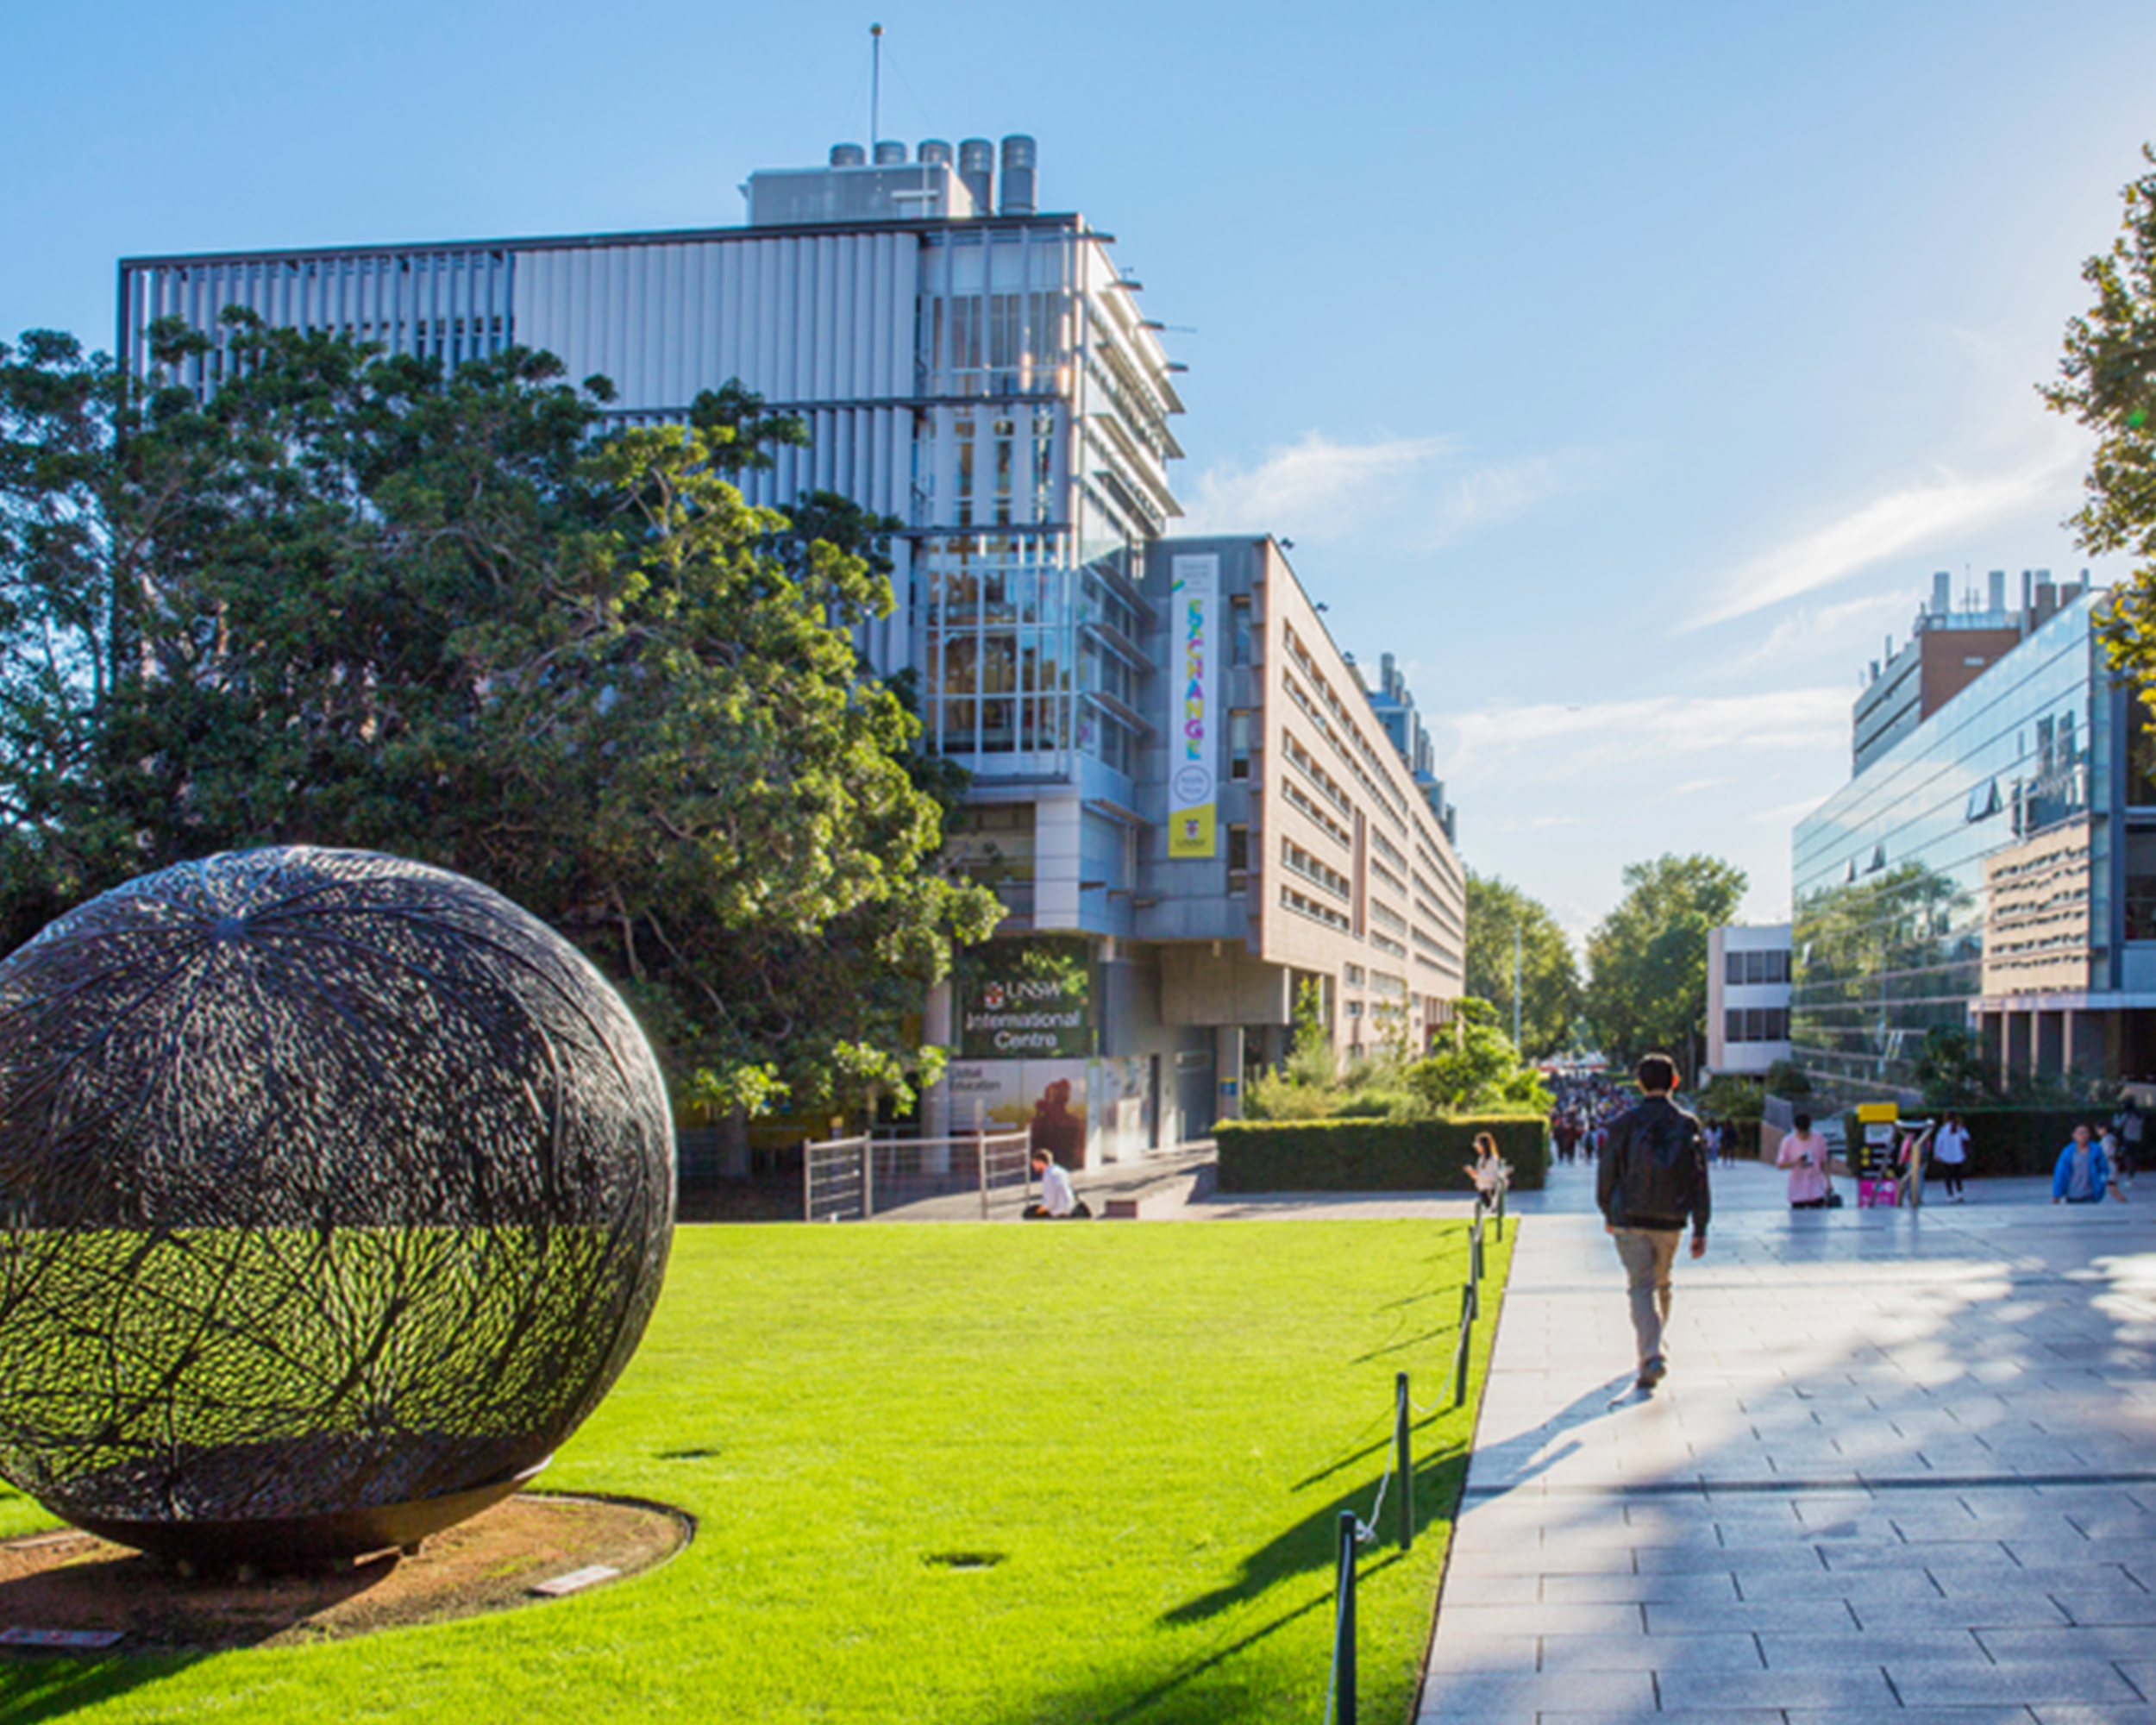 UNSW launches climate change tax plan that pays revenue back to voters - Julia Nichols